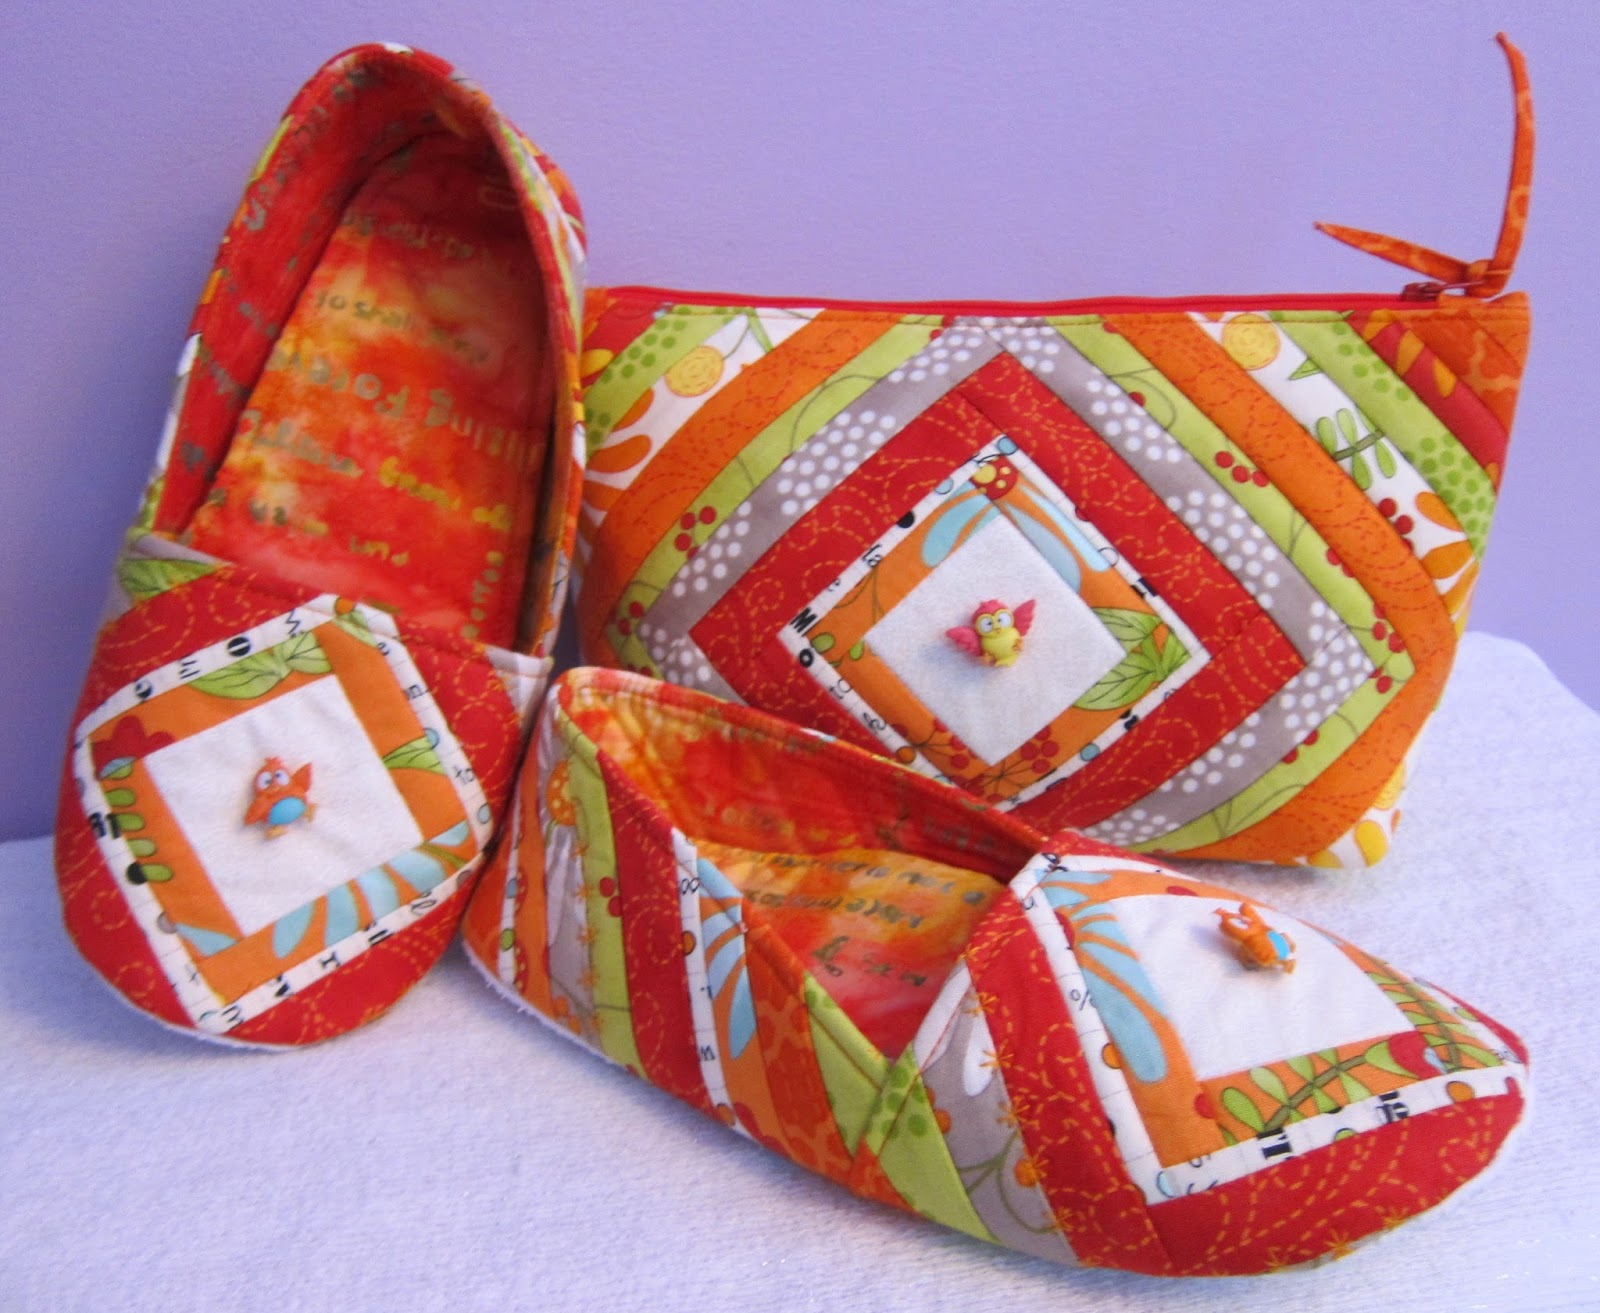 Cool Cats and Quilts: Quilted Mama Bear Slippers & Cosmetic Bag ... : quilted slippers pattern - Adamdwight.com